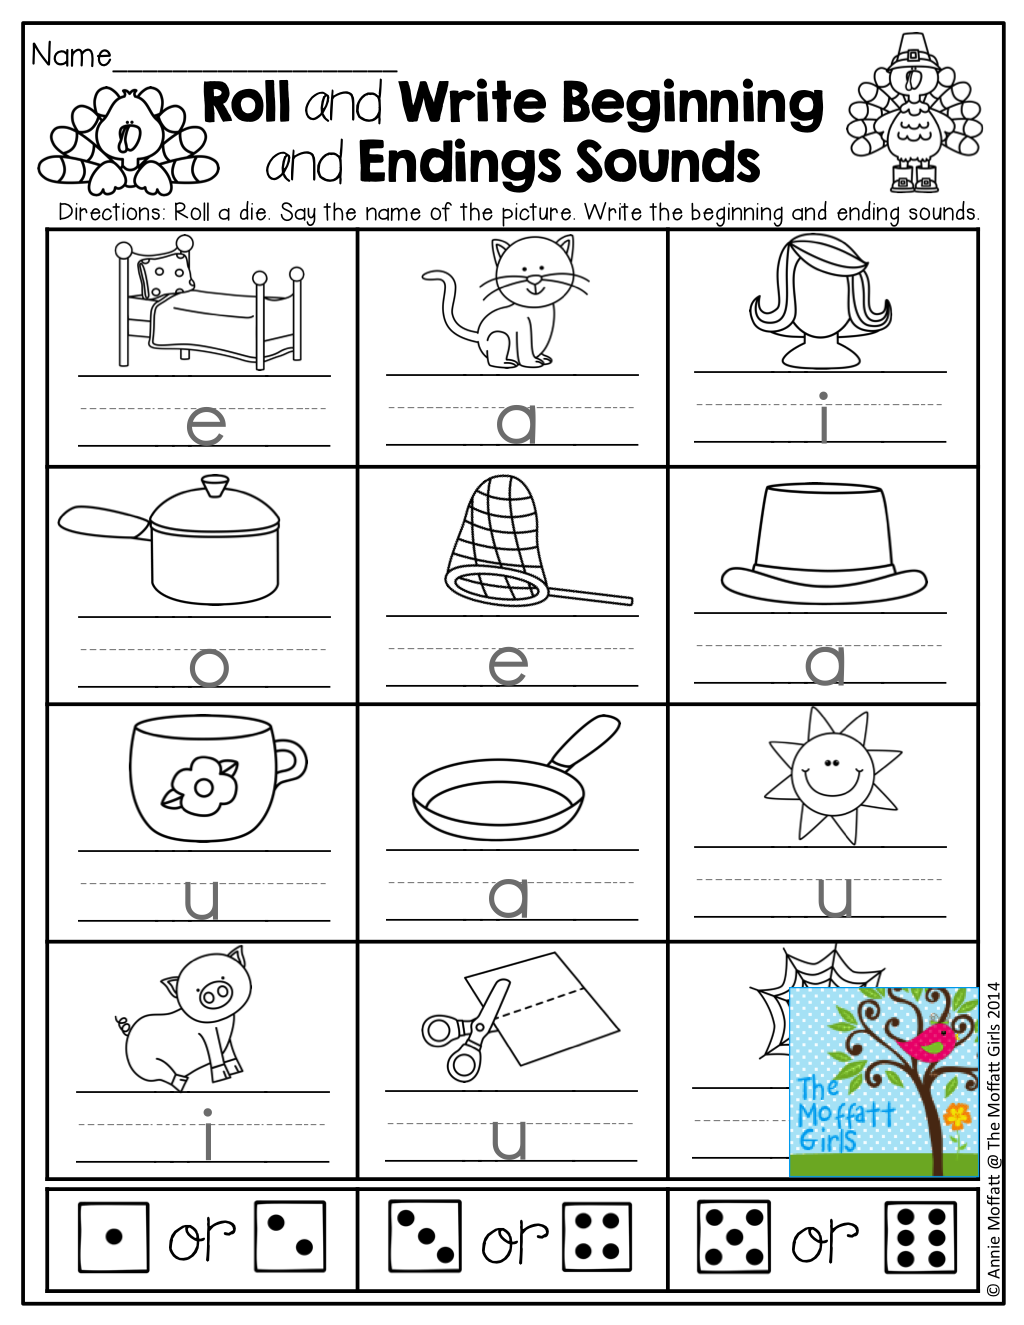 Roll And Write Beginning And Endings Tons Of Fun